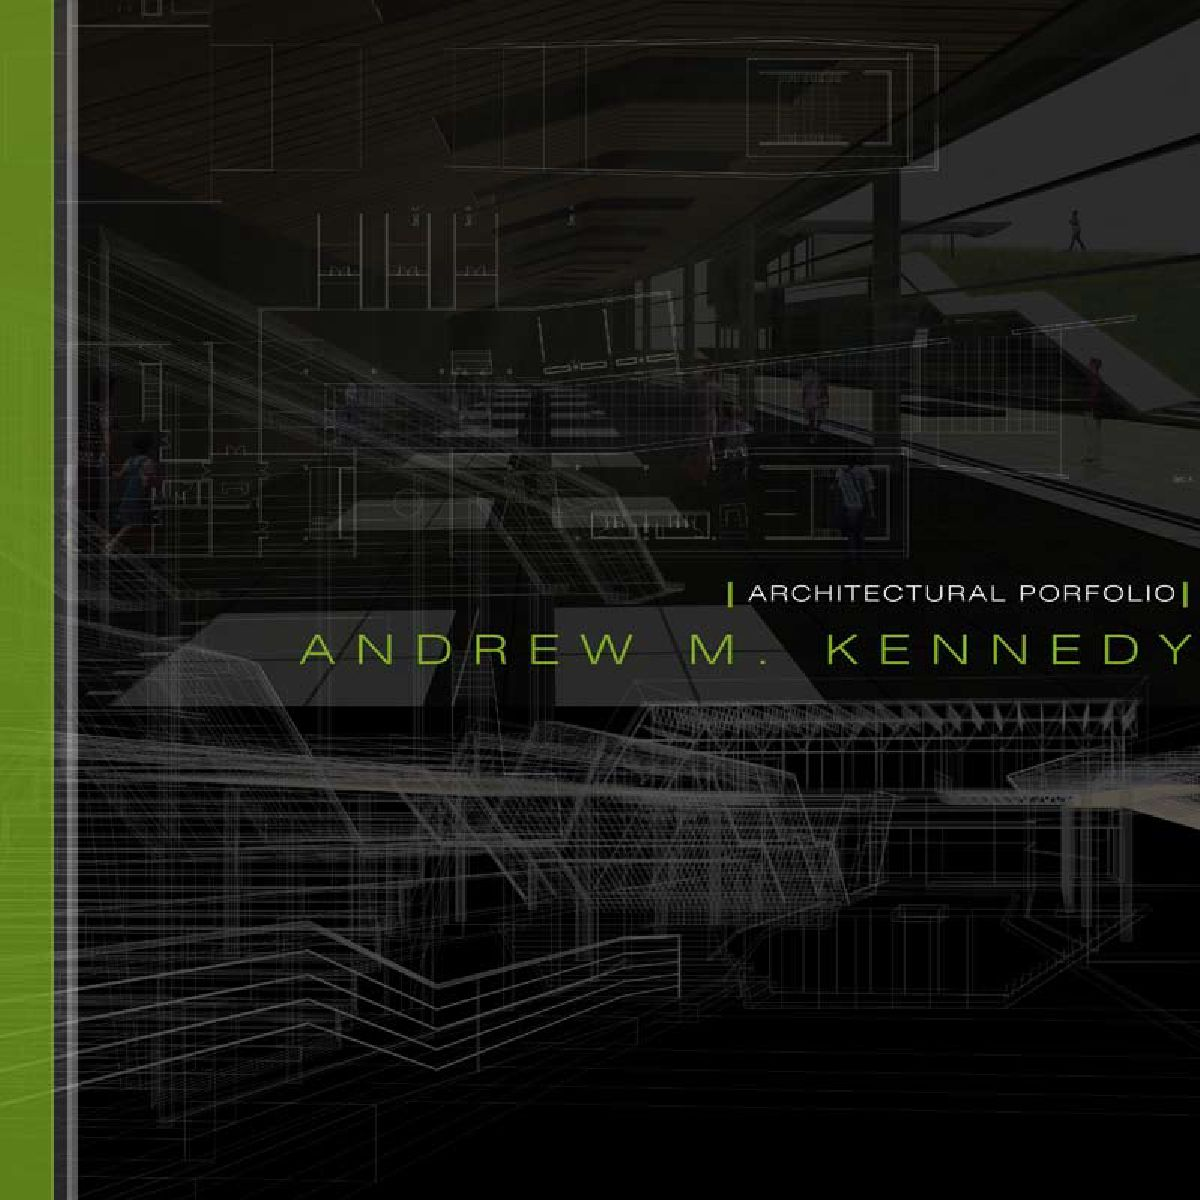 andrew kennedy architectural portfolio by andrew kennedy